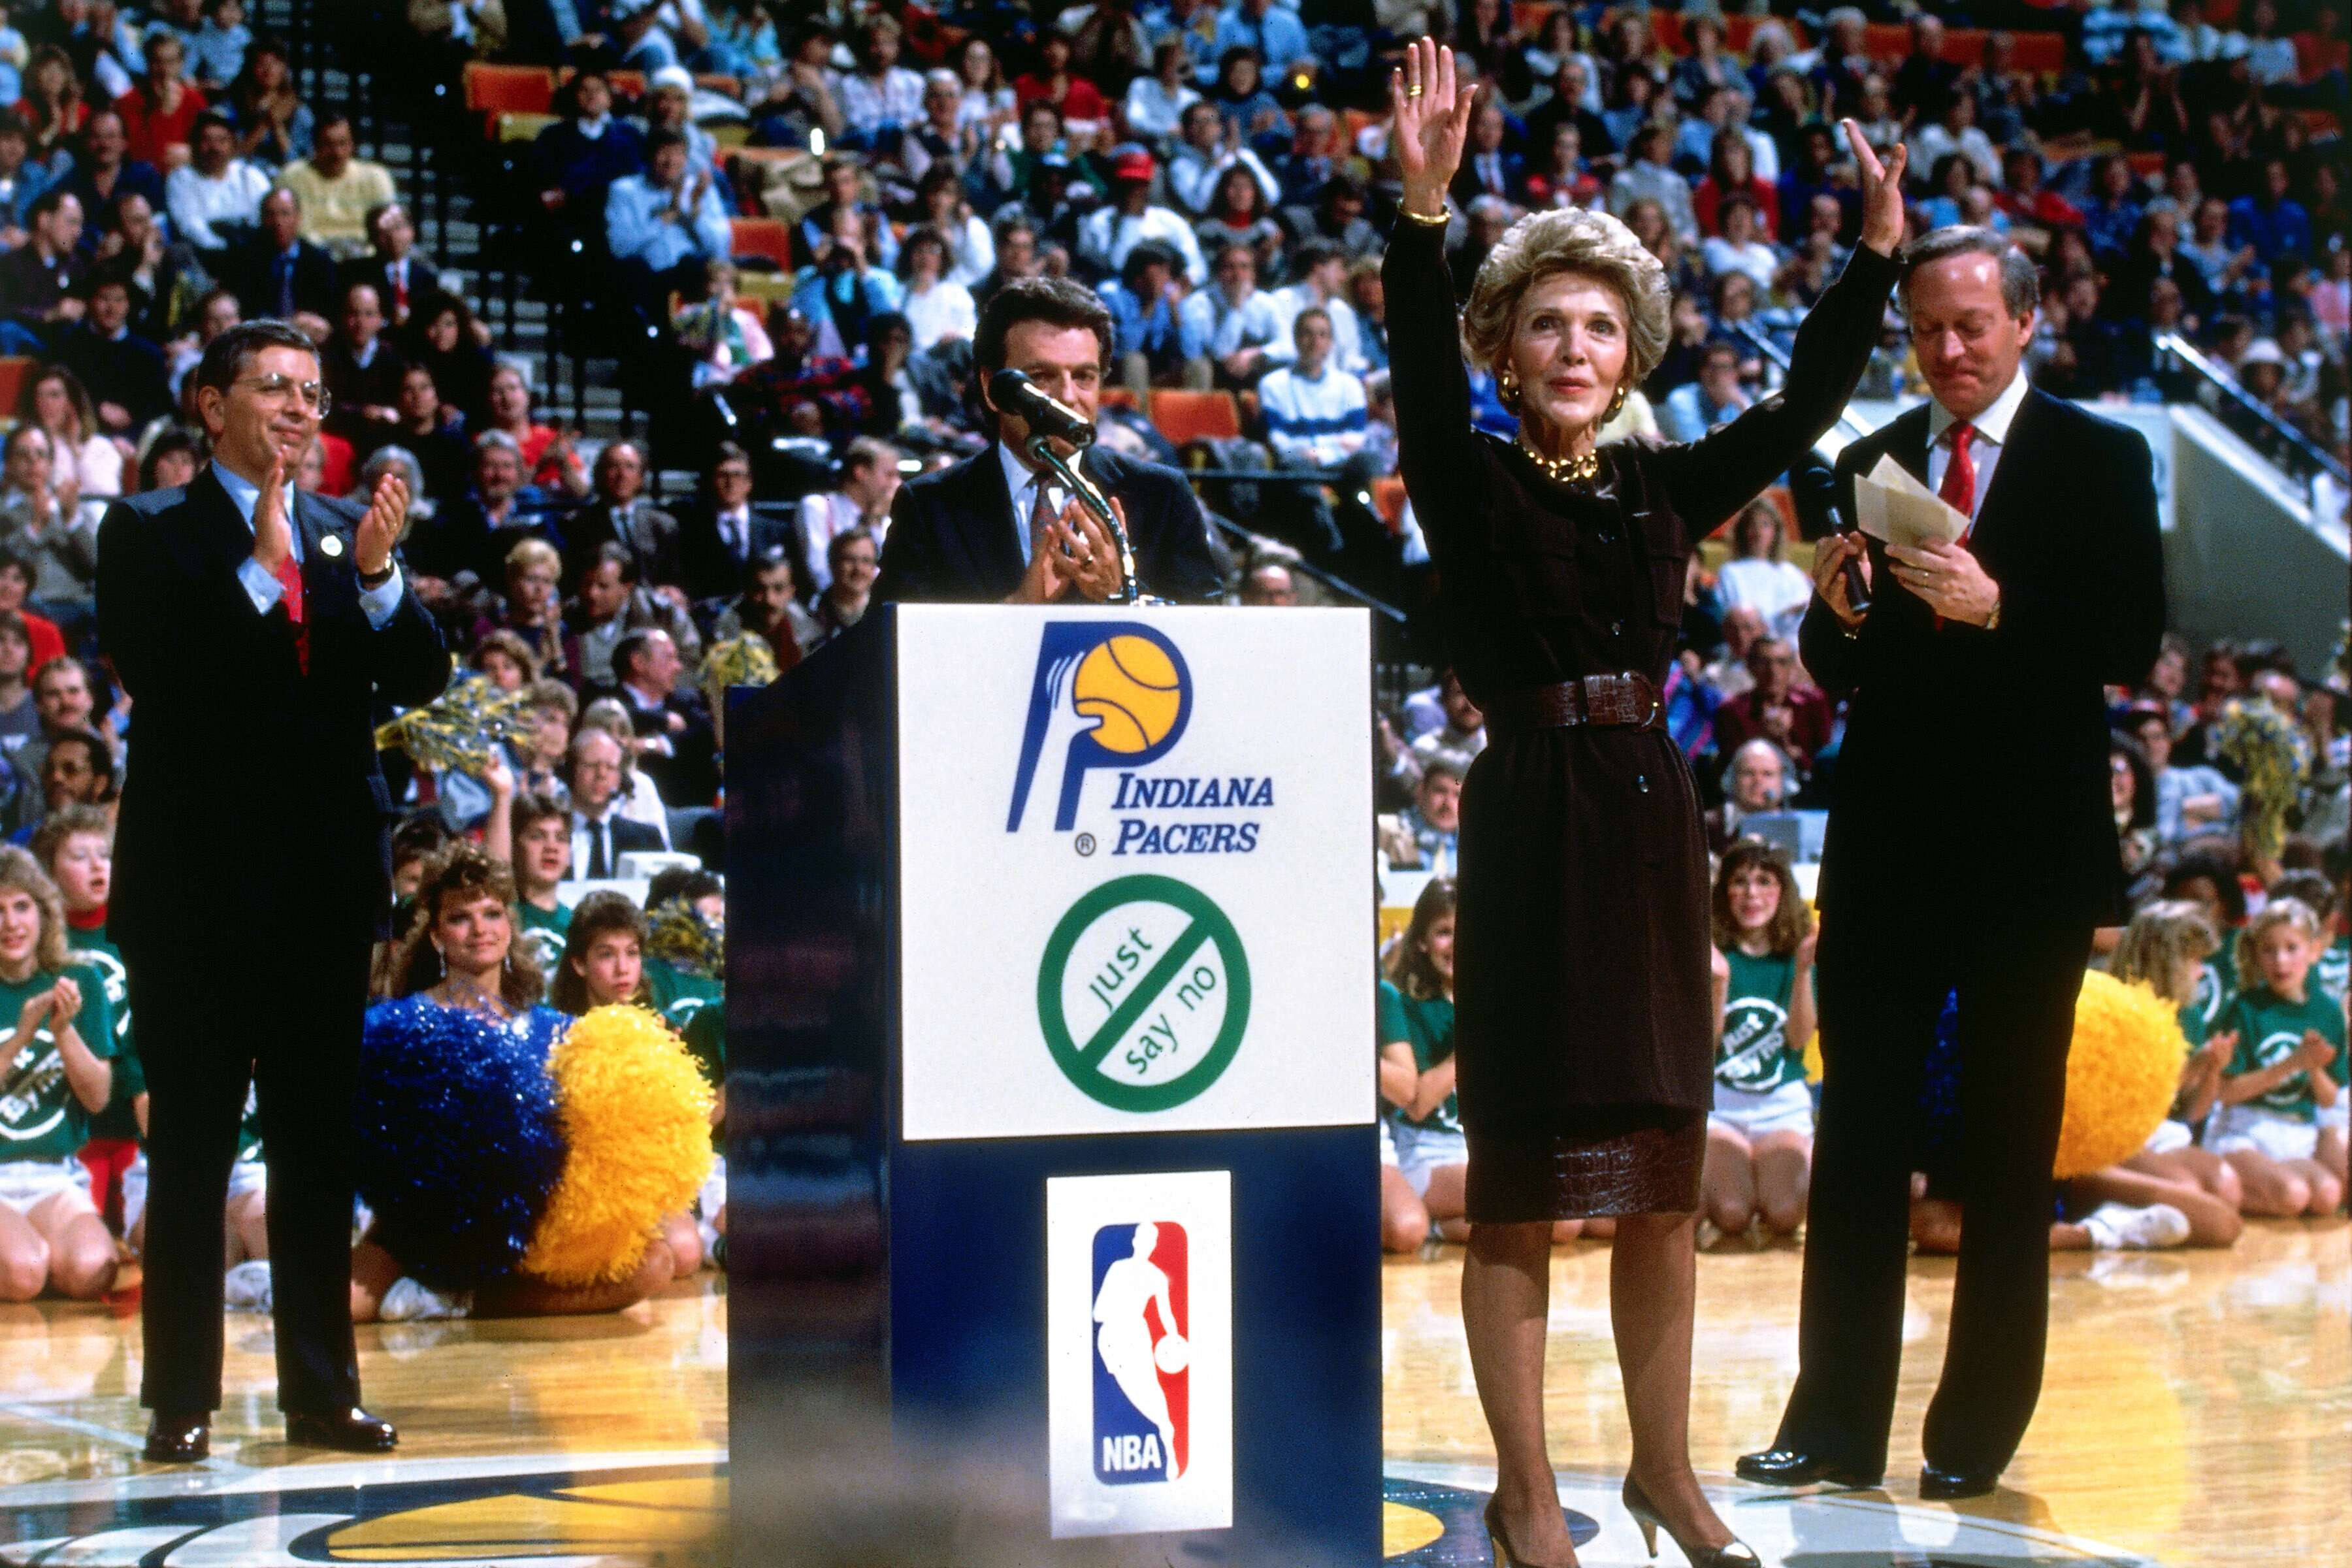 """Indiana Pacers """"Just Say No"""" Campaign"""